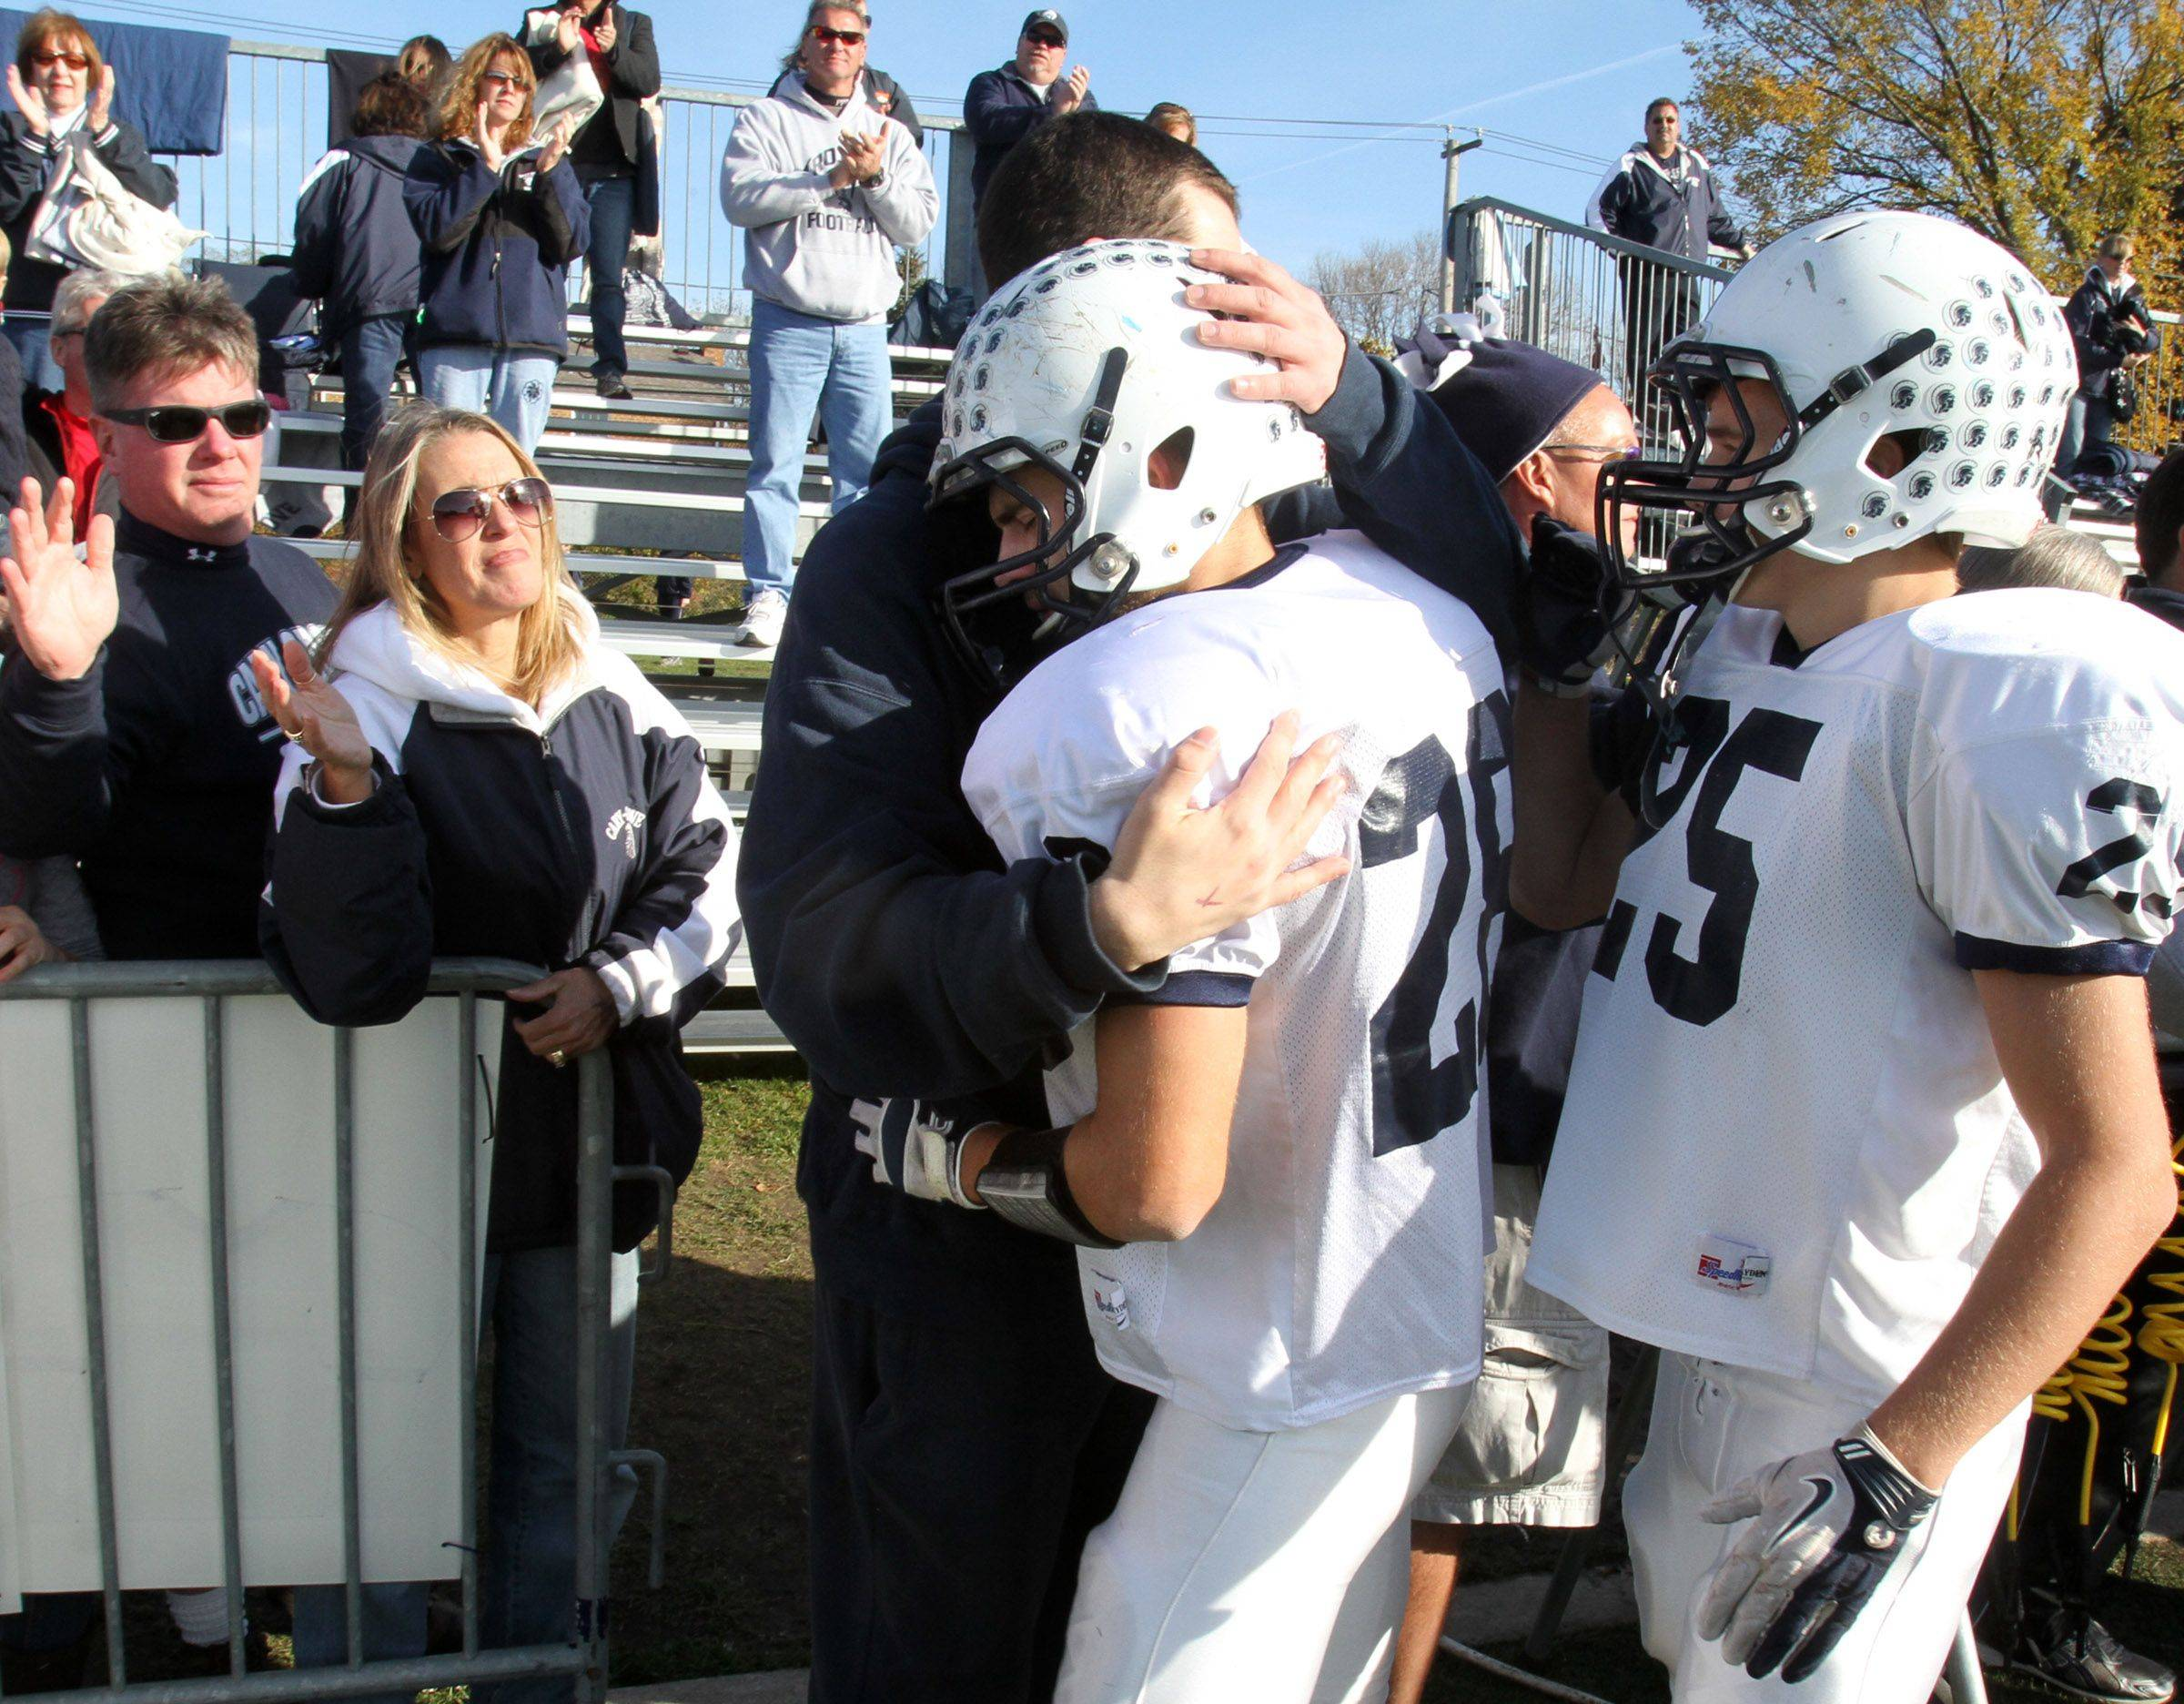 Cary-Grove running back Connor Carlson after loss to Nazareth Academy on Saturday, November 5th.